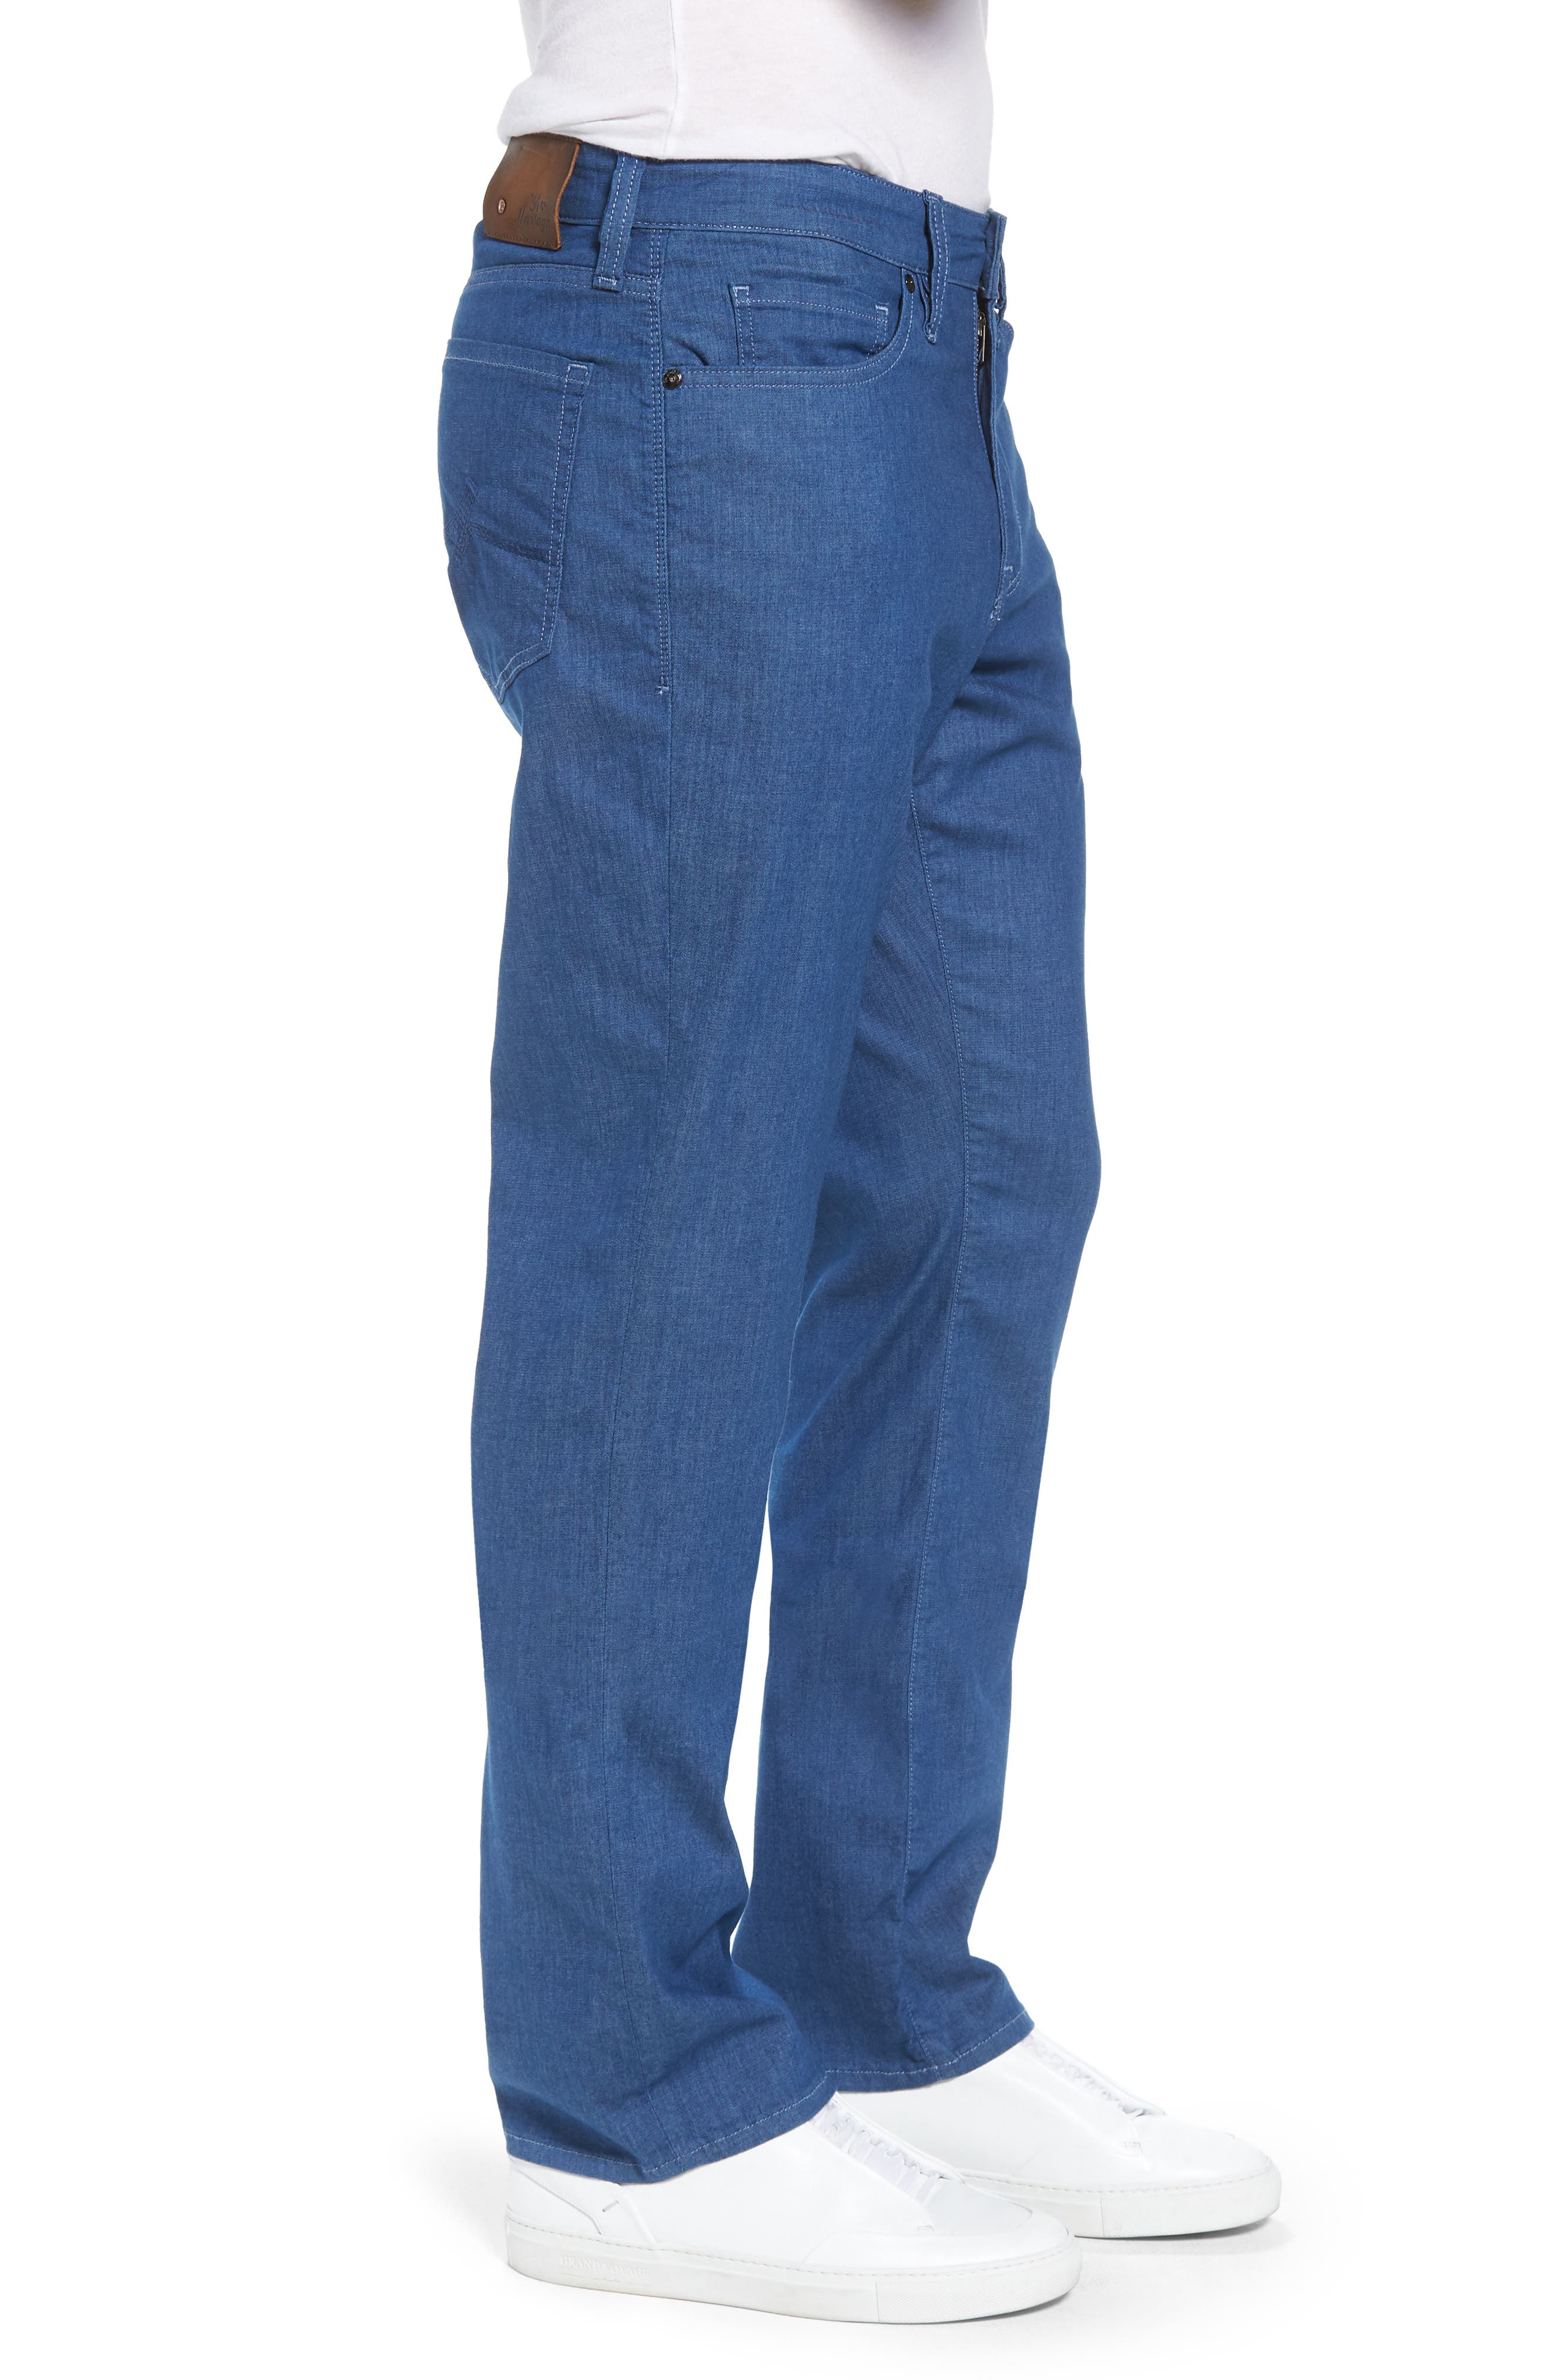 Alternate Image 3  - 34 Heritage Charisma Relaxed Fit Jeans (Mid Maui Denim)